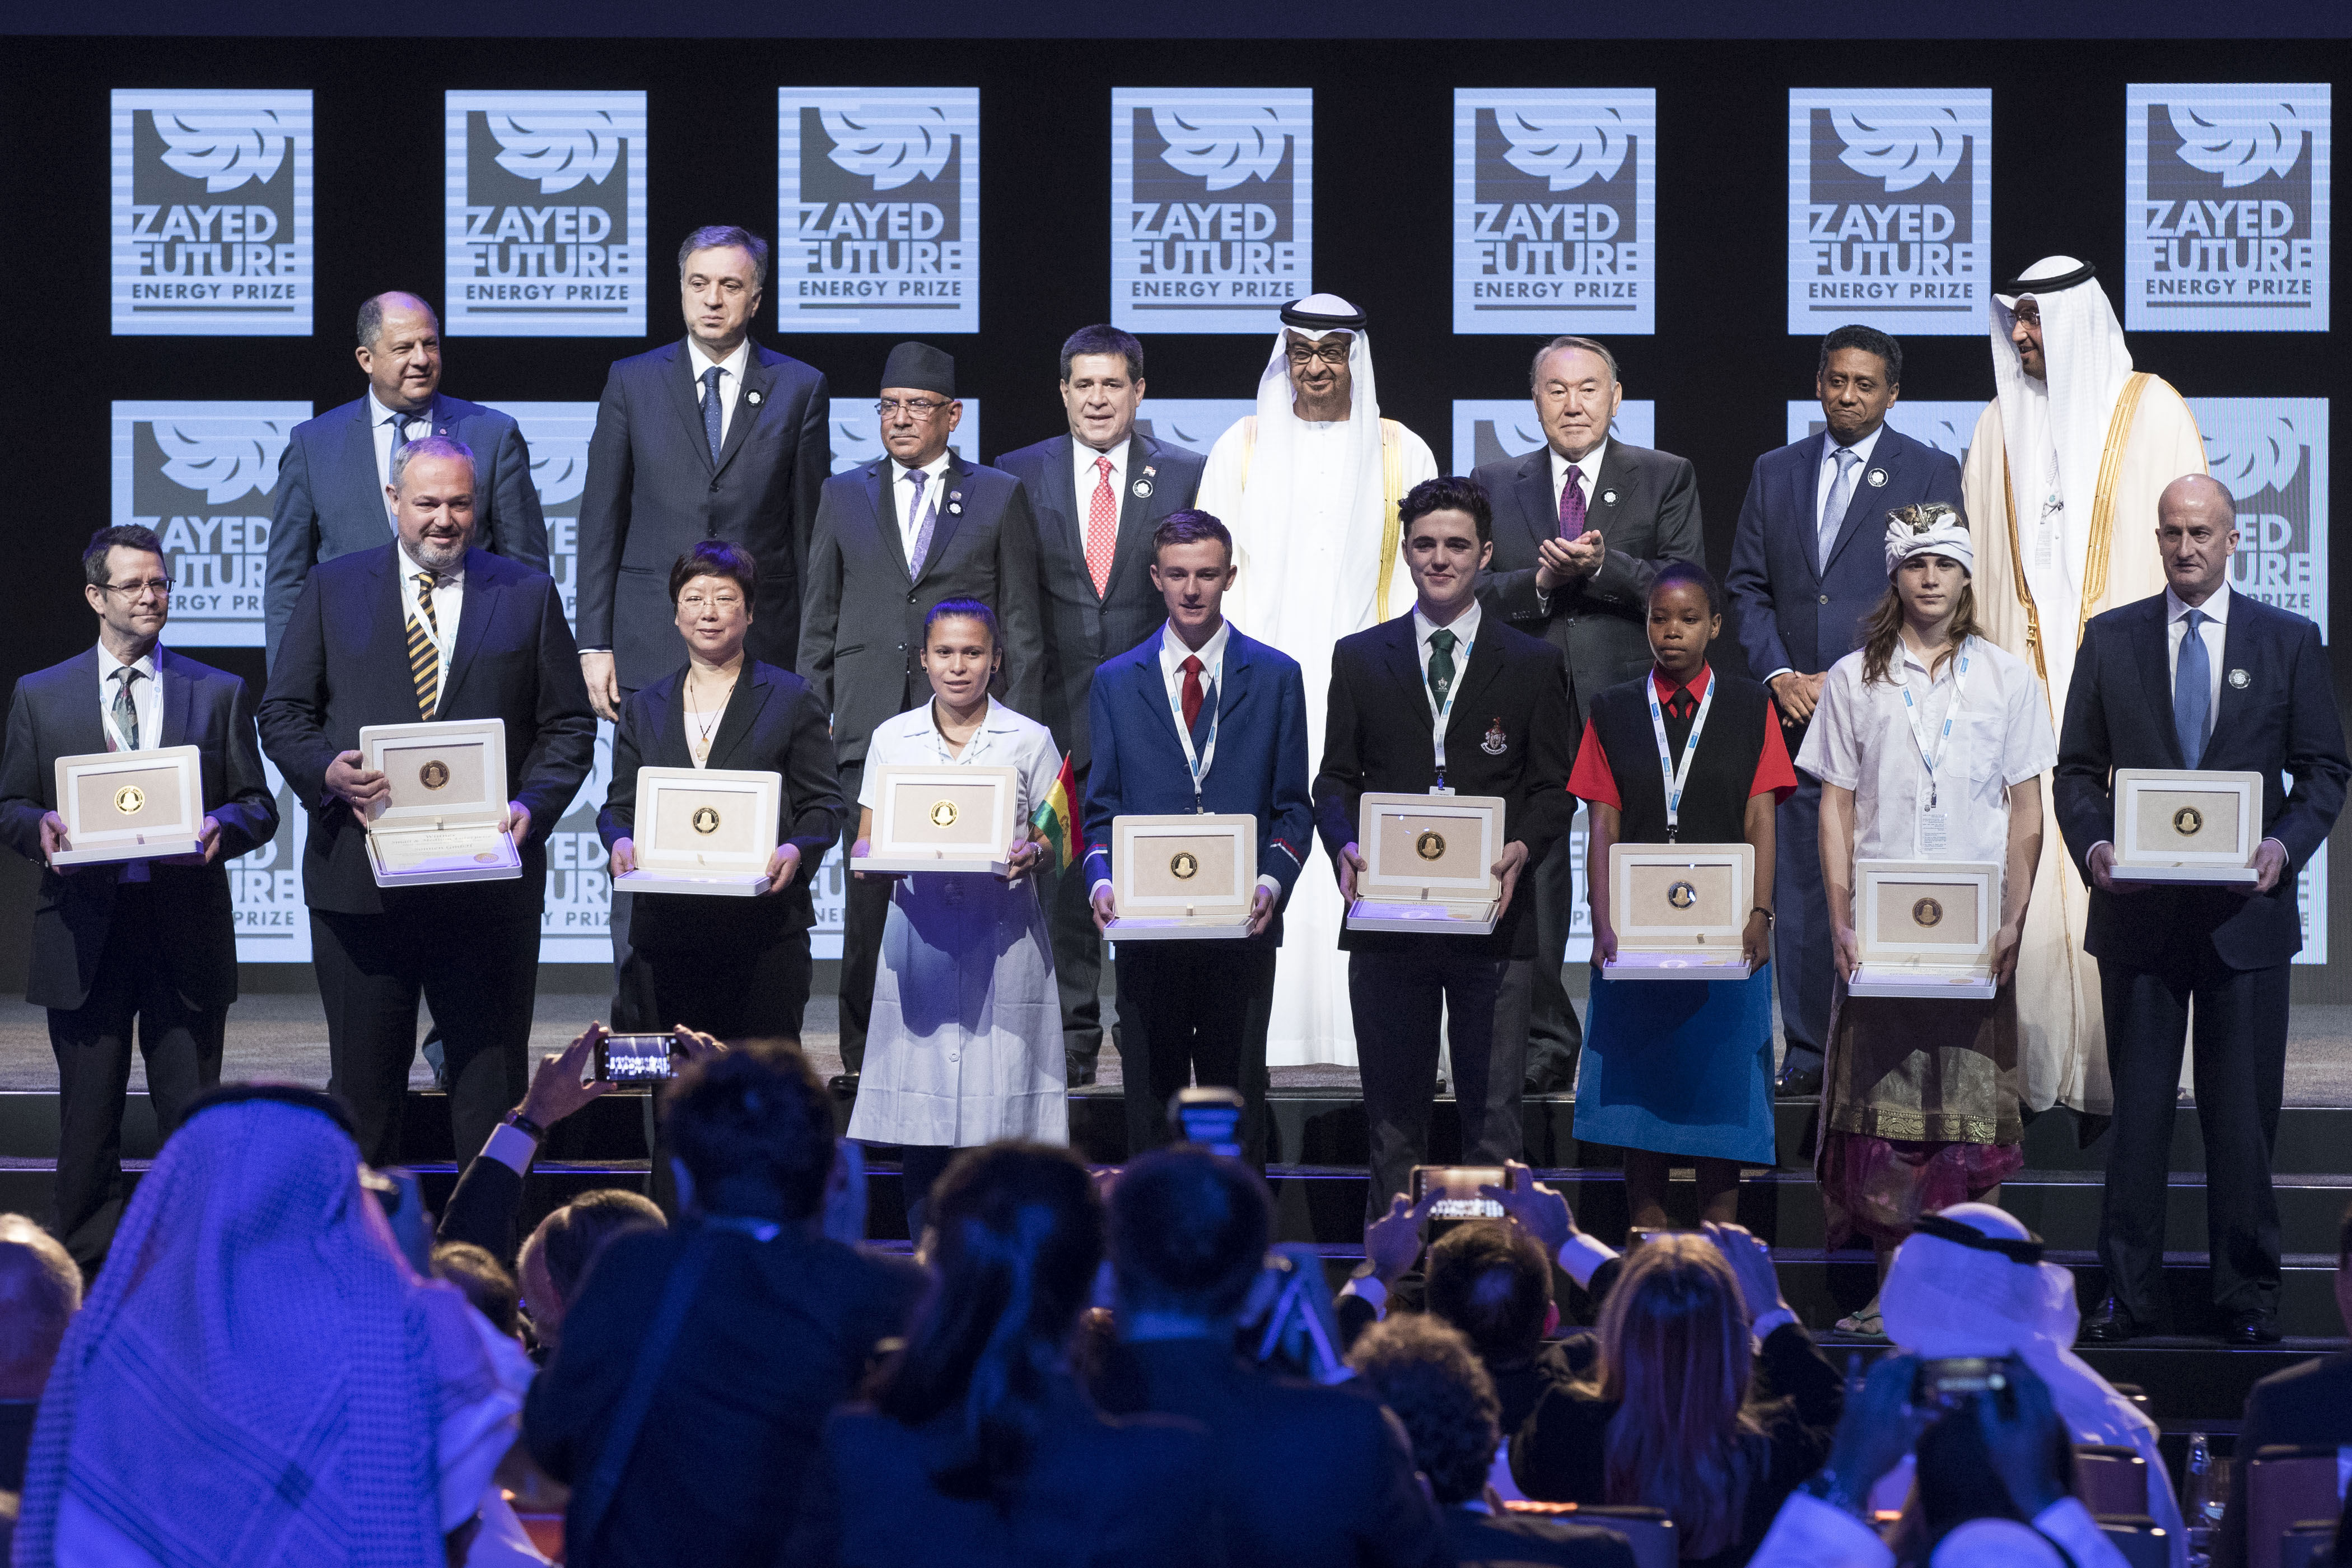 HH Sheikh Mohammed bin Zayed Al Nahyan, Crown Prince of Abu Dhabi, and heads of state with representatives of the nine winners of the 2017 Zayed Future Energy Prize at the awards ceremony in Abu Dhabi, UAE (Photo: ME NewsWire)